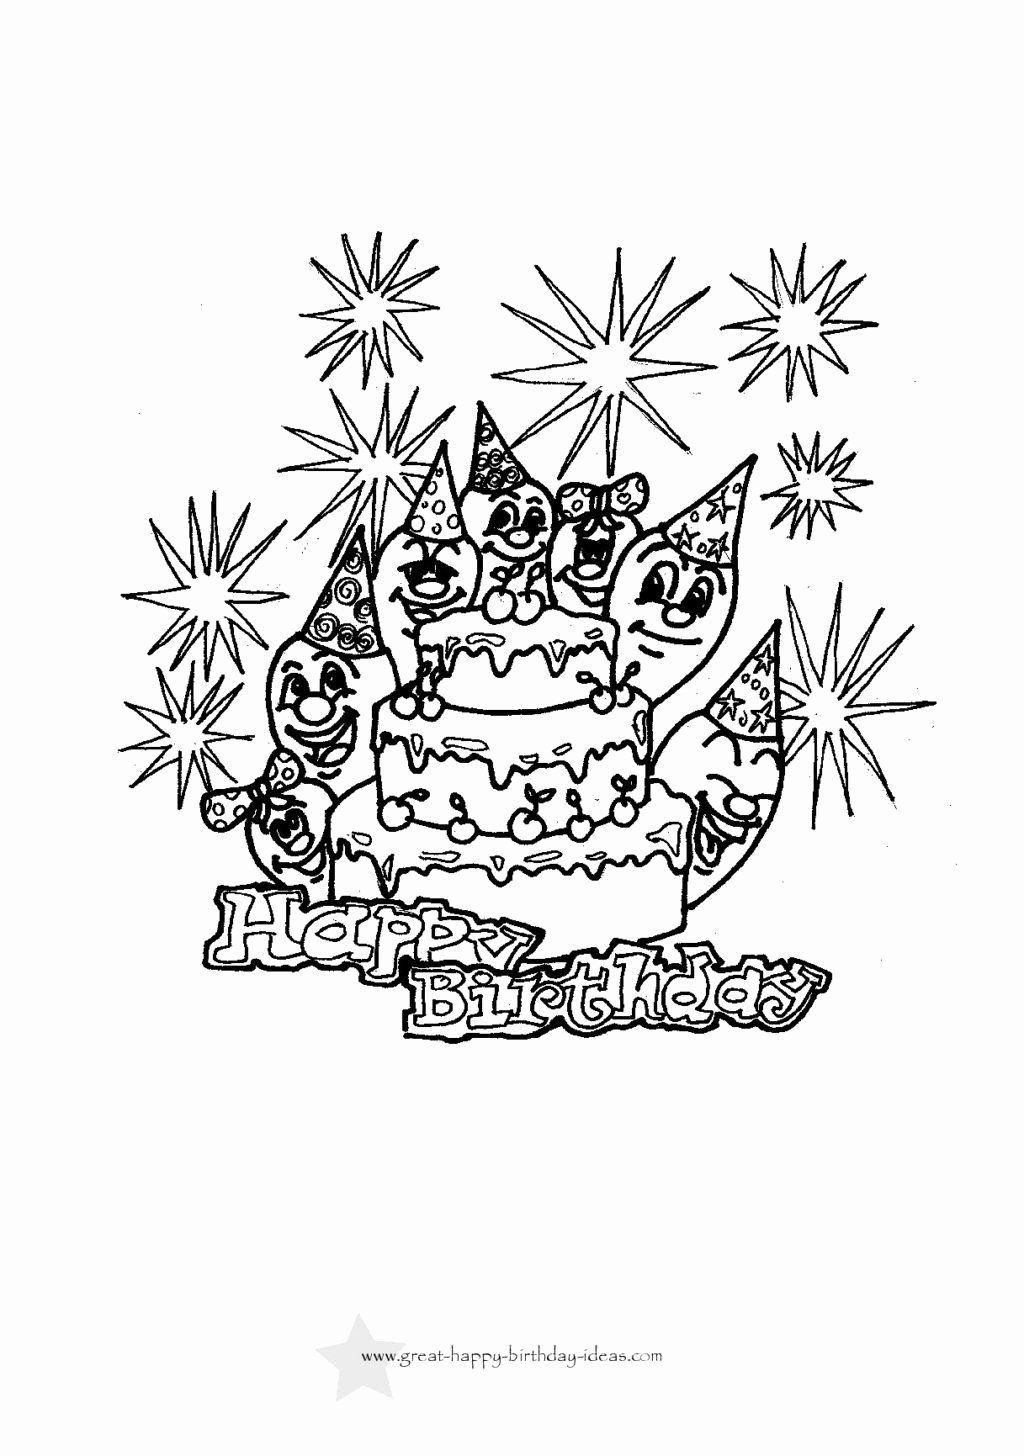 happy 30th birthday coloring pages free printable birthday cake coloring sheets for kidsfree birthday happy coloring 30th pages